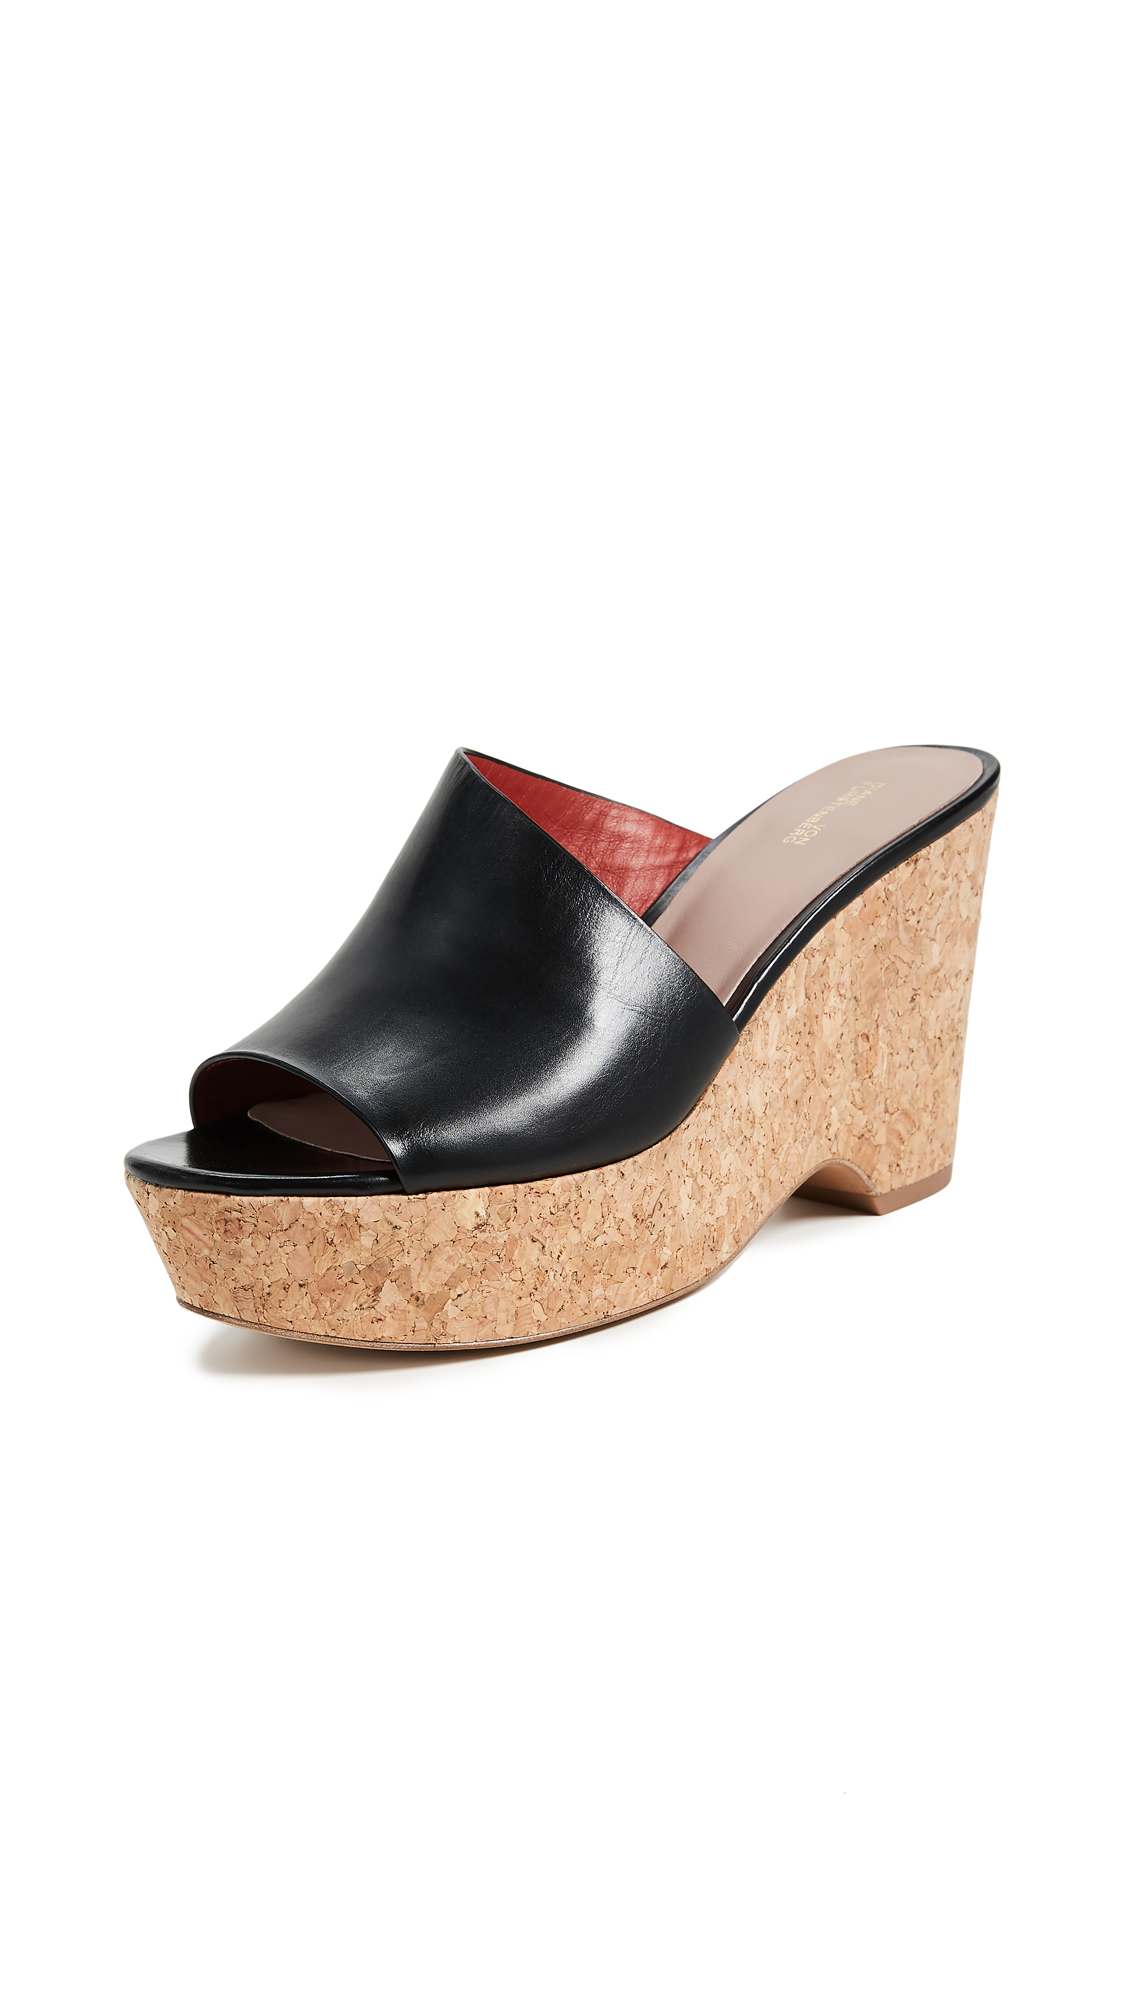 Diane von Furstenberg Bonnie Wedge Mules - Black